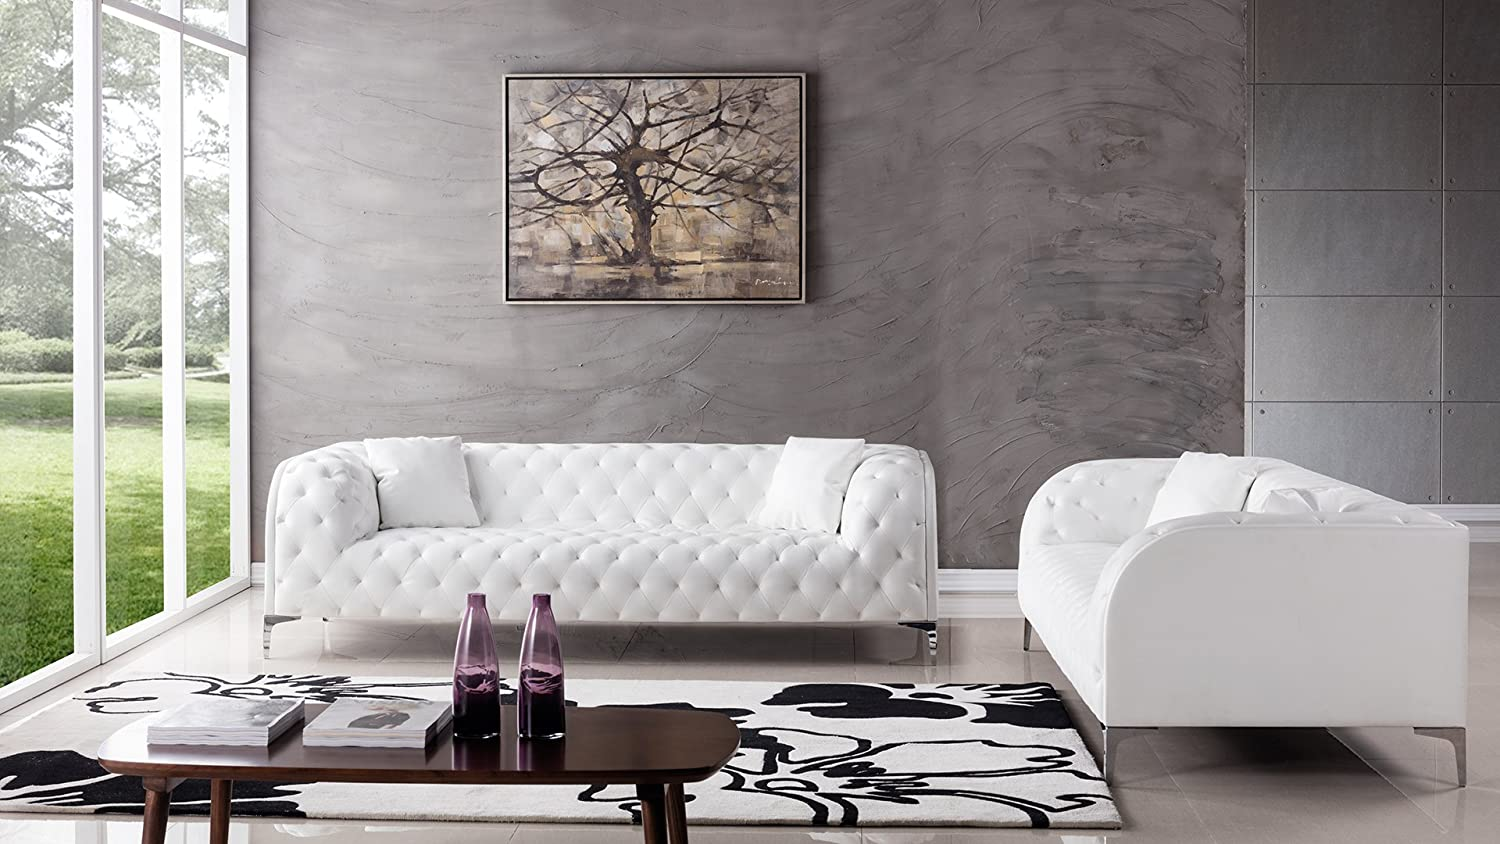 Amazon.com: American Eagle Furniture 2 Piece Dobson Collection Complete Leather  Tufted Living Room Sofa Set, White: Kitchen U0026 Dining